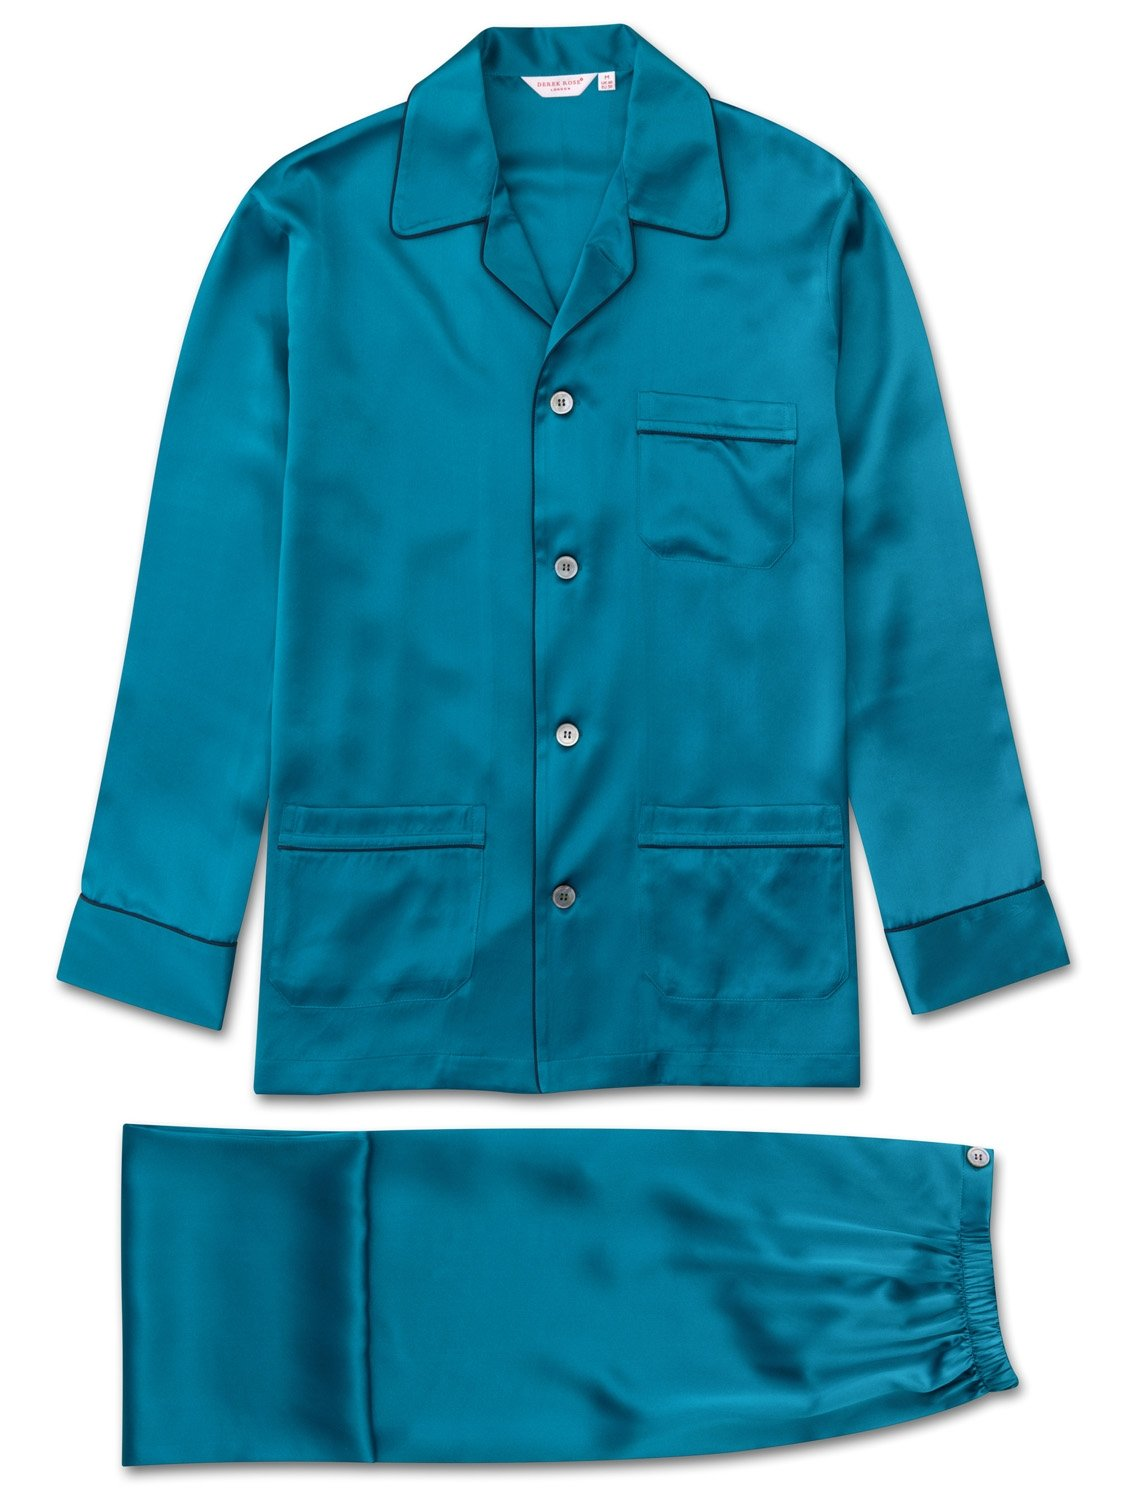 Men's Classic Fit Piped Pyjamas Bailey Pure Silk Satin Teal